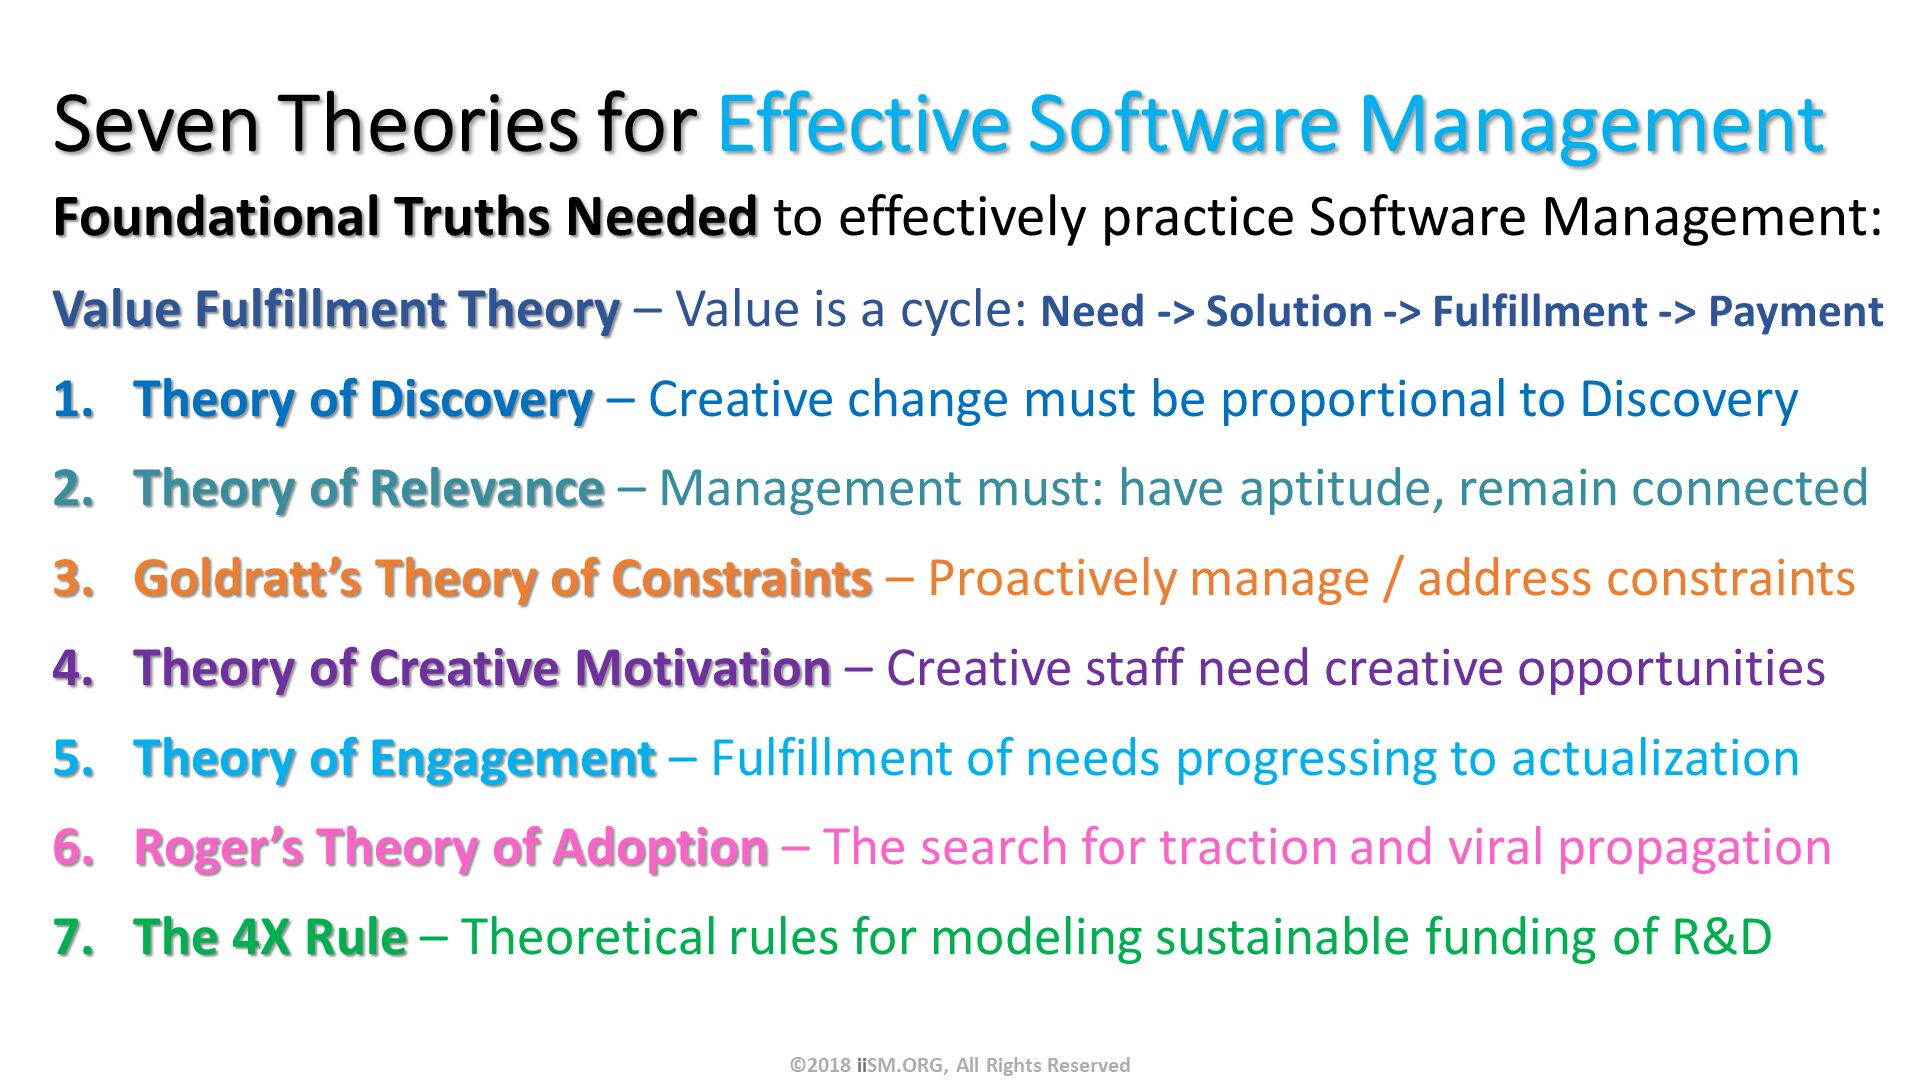 Seven Theories for Effective Software Management. Foundational Truths Needed to effectively practice Software Management: Value Fulfillment Theory – Value is a cycle: Need -> Solution -> Fulfillment -> Payment Theory of Discovery – Creative change must be proportional to Discovery Theory of Relevance – Management must: have aptitude, remain connected Goldratt's Theory of Constraints – Proactively manage / address constraints Theory of Creative Motivation – Creative staff need creative opportunities Theory of Engagement – Fulfillment of needs progressing to actualization Roger's Theory of Adoption – The search for traction and viral propagation  The 4X Rule – Theoretical rules for modeling sustainable funding of R&D. ©2018 iiSM.ORG, All Rights Reserved.